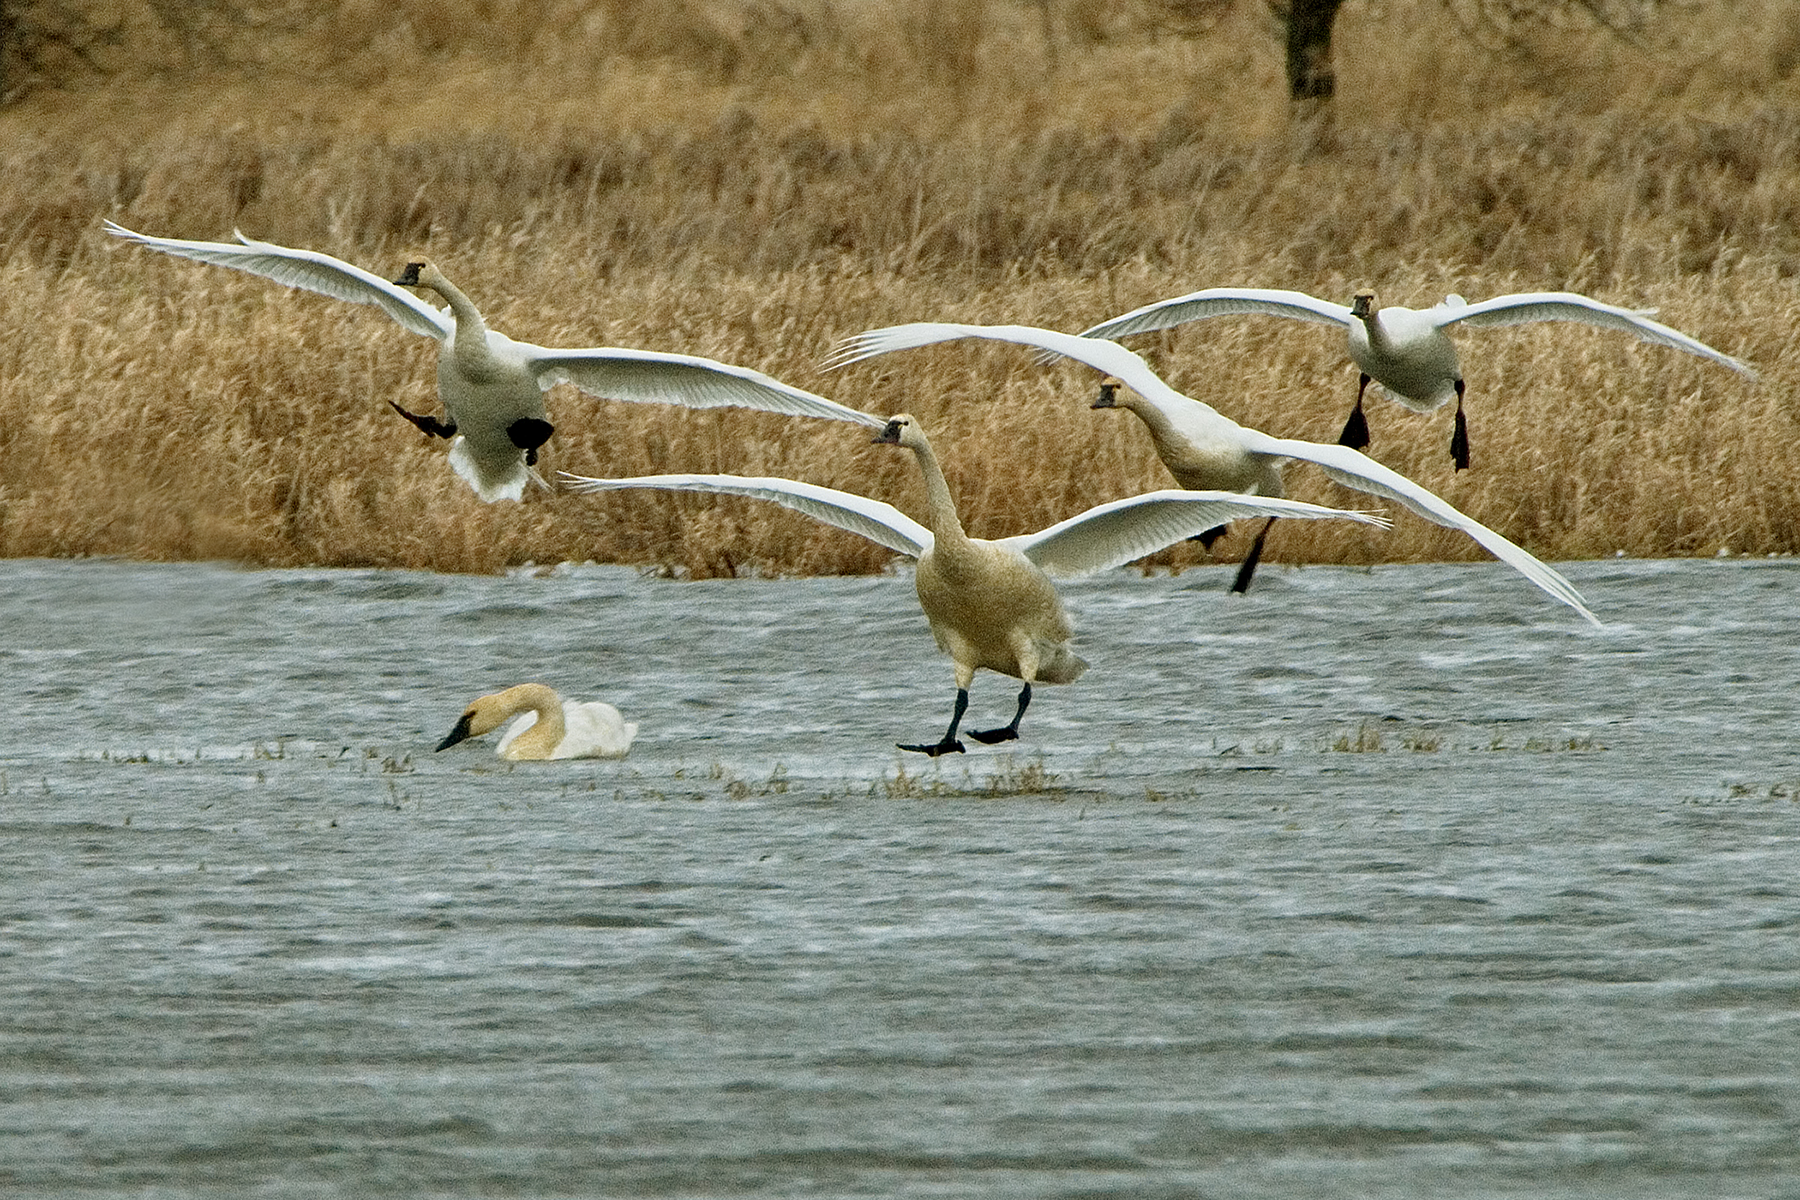 Carty Lake is known for its high concentrations of tundra swans. Photo by USFWS